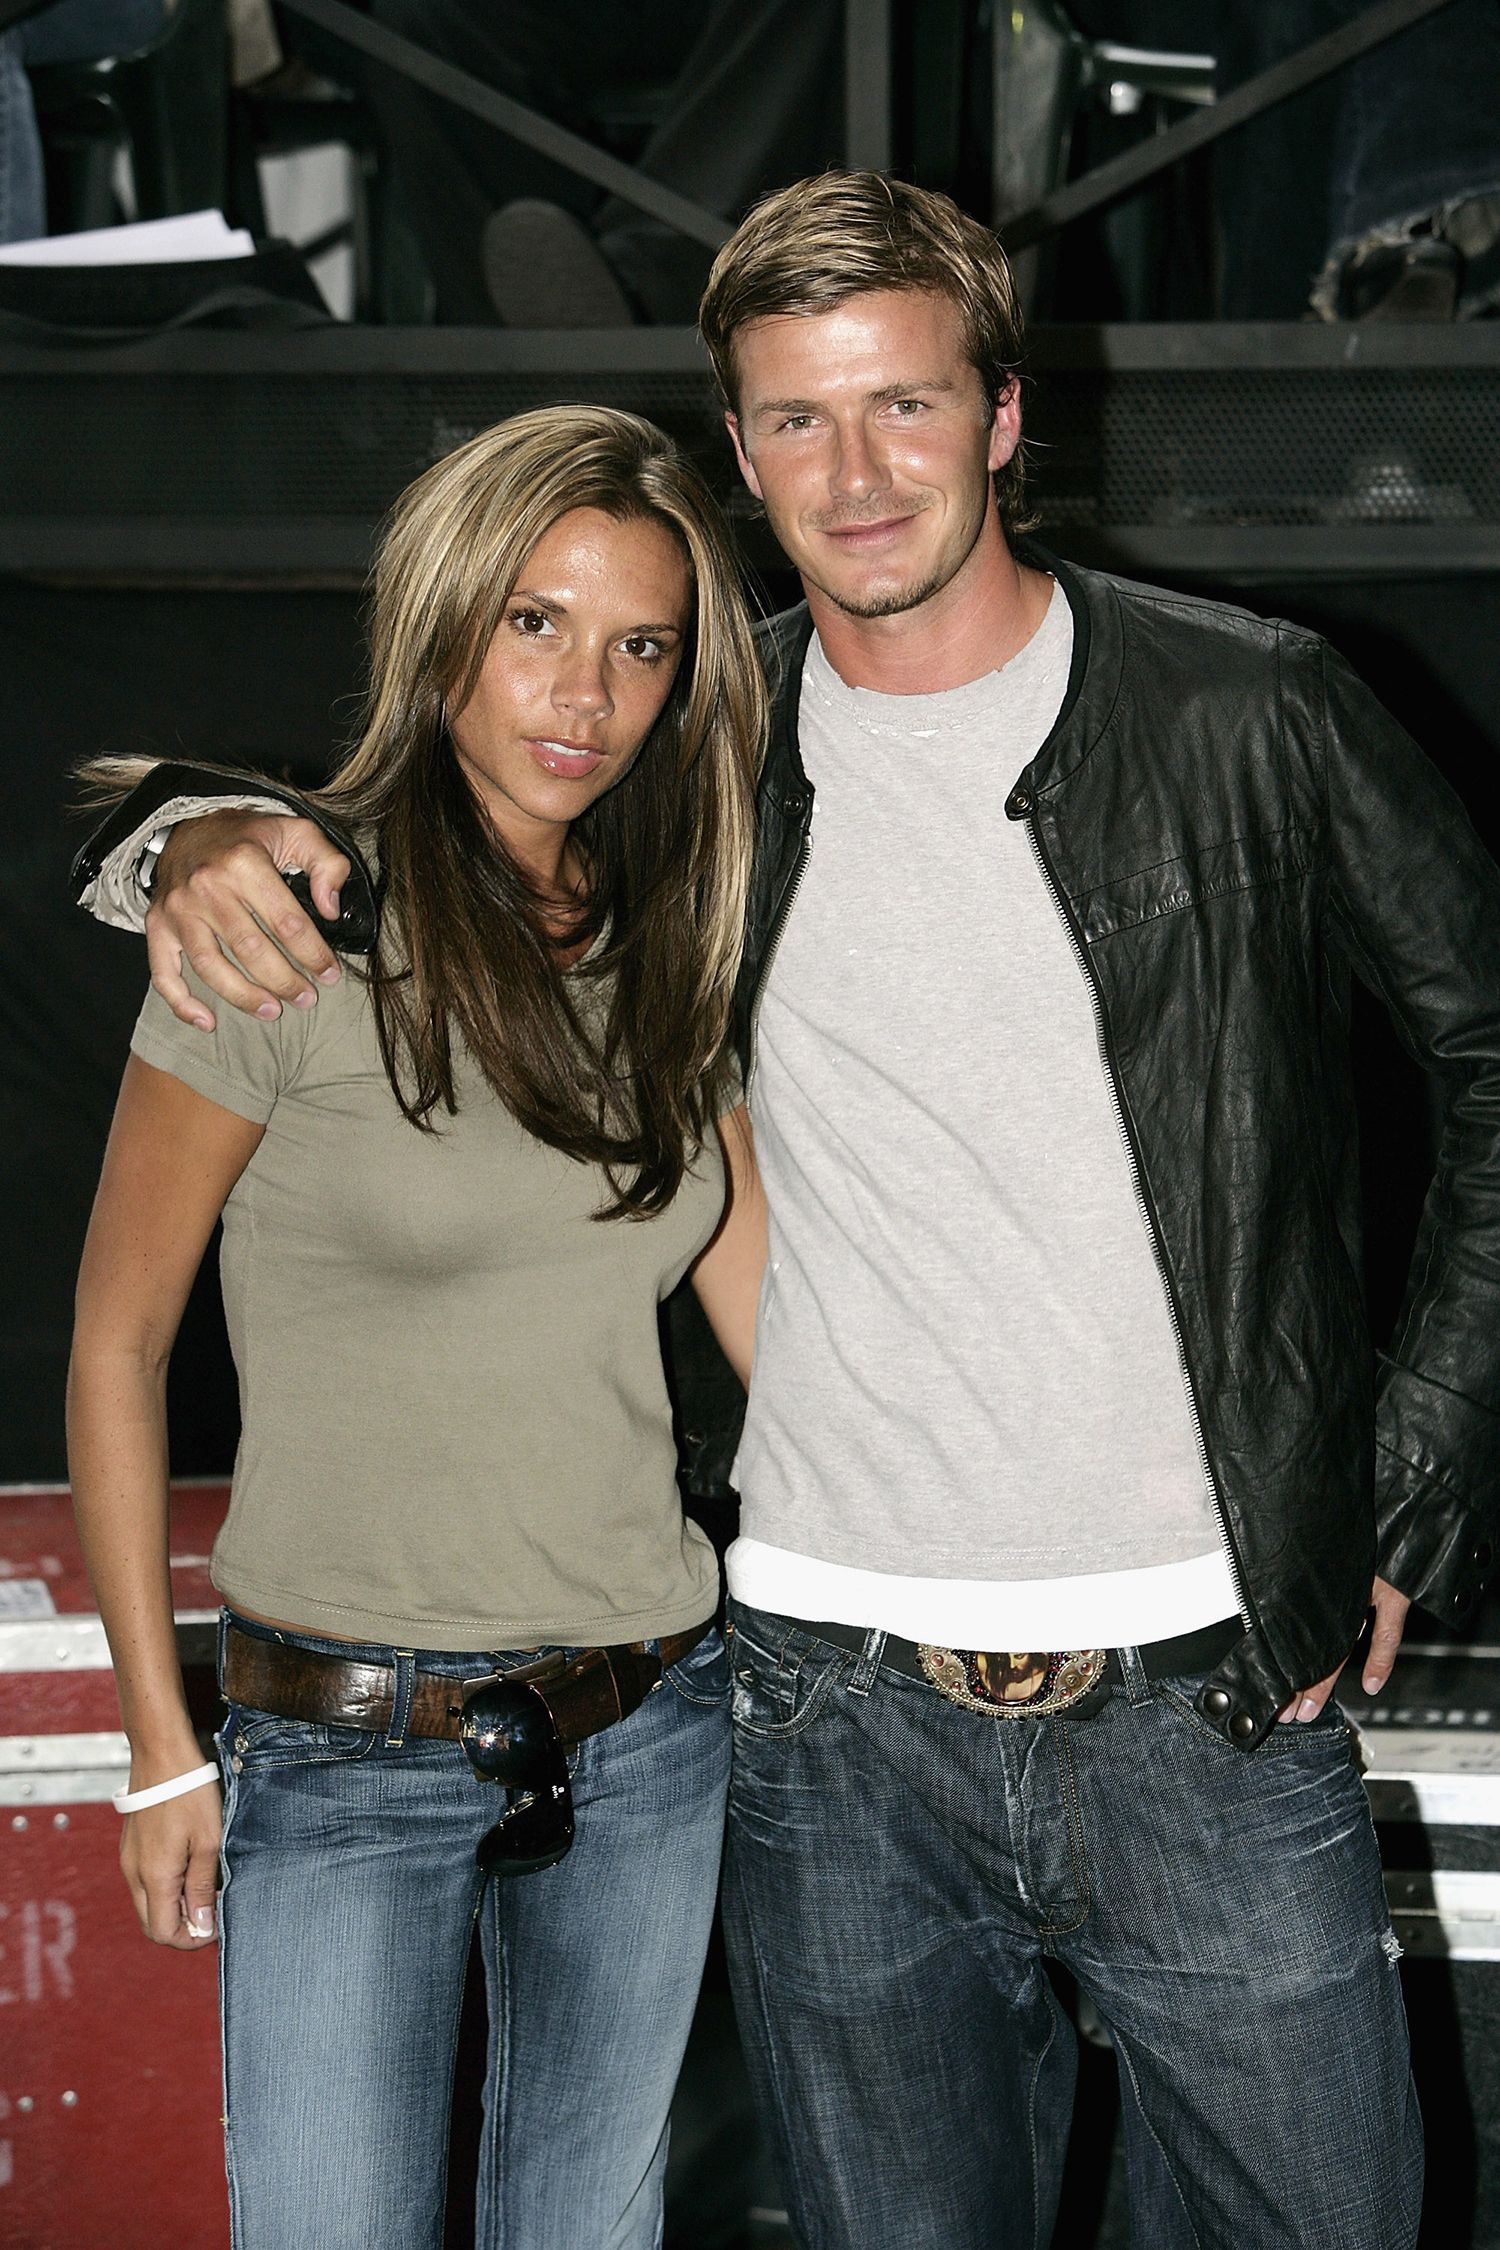 David Beckham's Style Transformation Through The Years